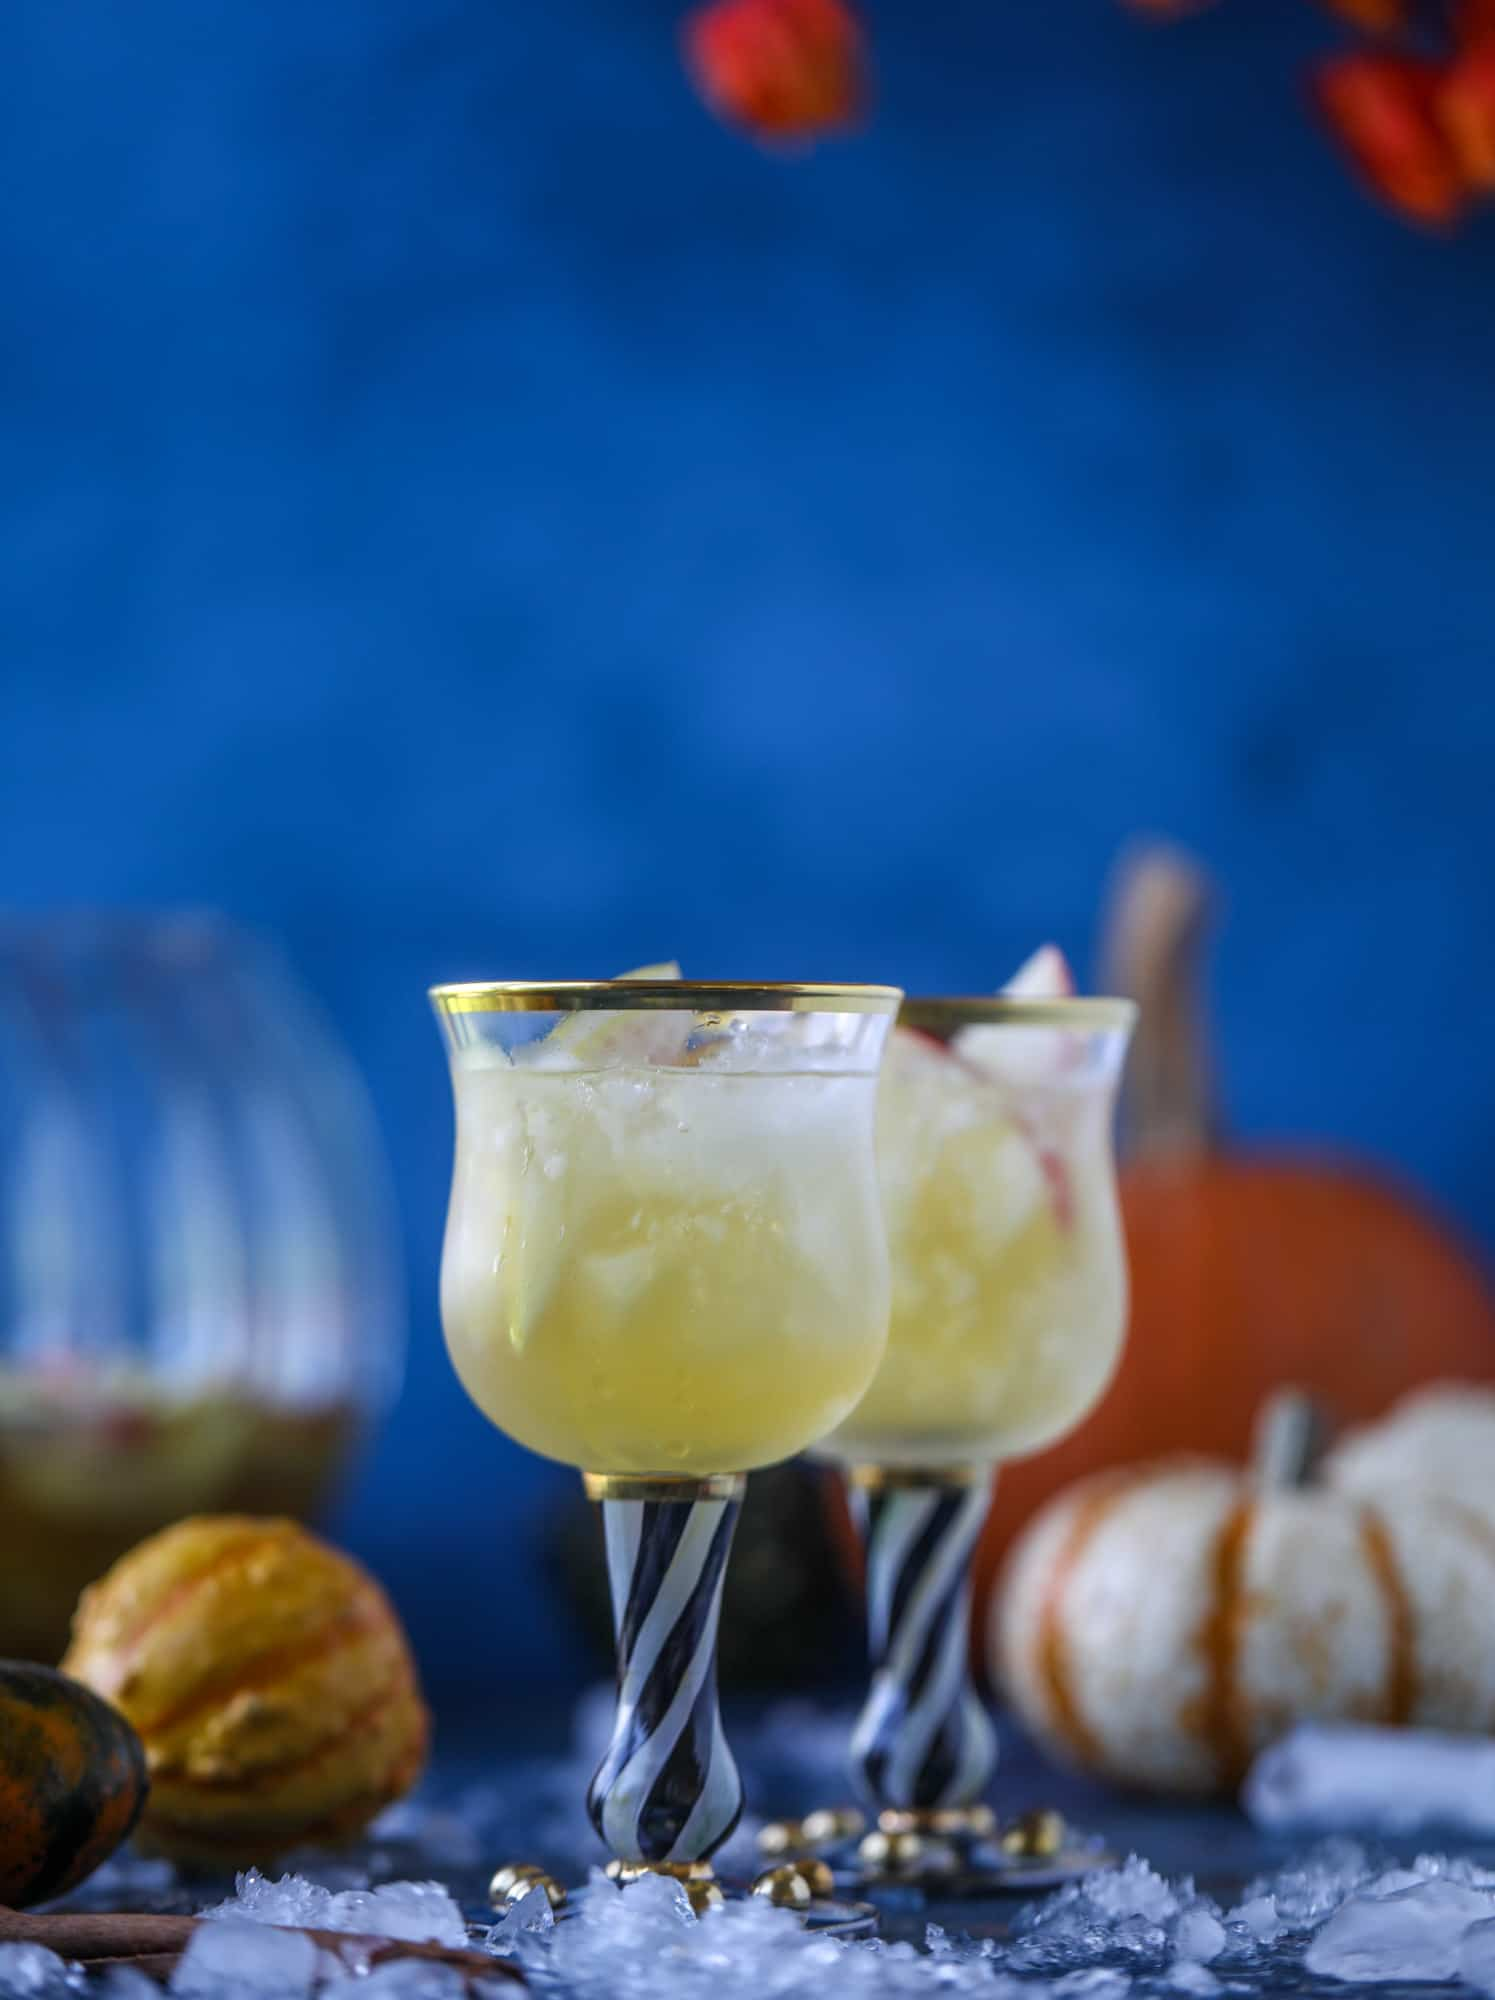 This pumpkin sangria is perfect for the fall and holiday season! A homemade pumpkin pie syrup gives the drink excellent flavor along with bubbles and apple cider and of course, boozy fruit. It's a favorite for Halloween or Thanksgiving! I howsweeteats.com #pumpkin #sangria